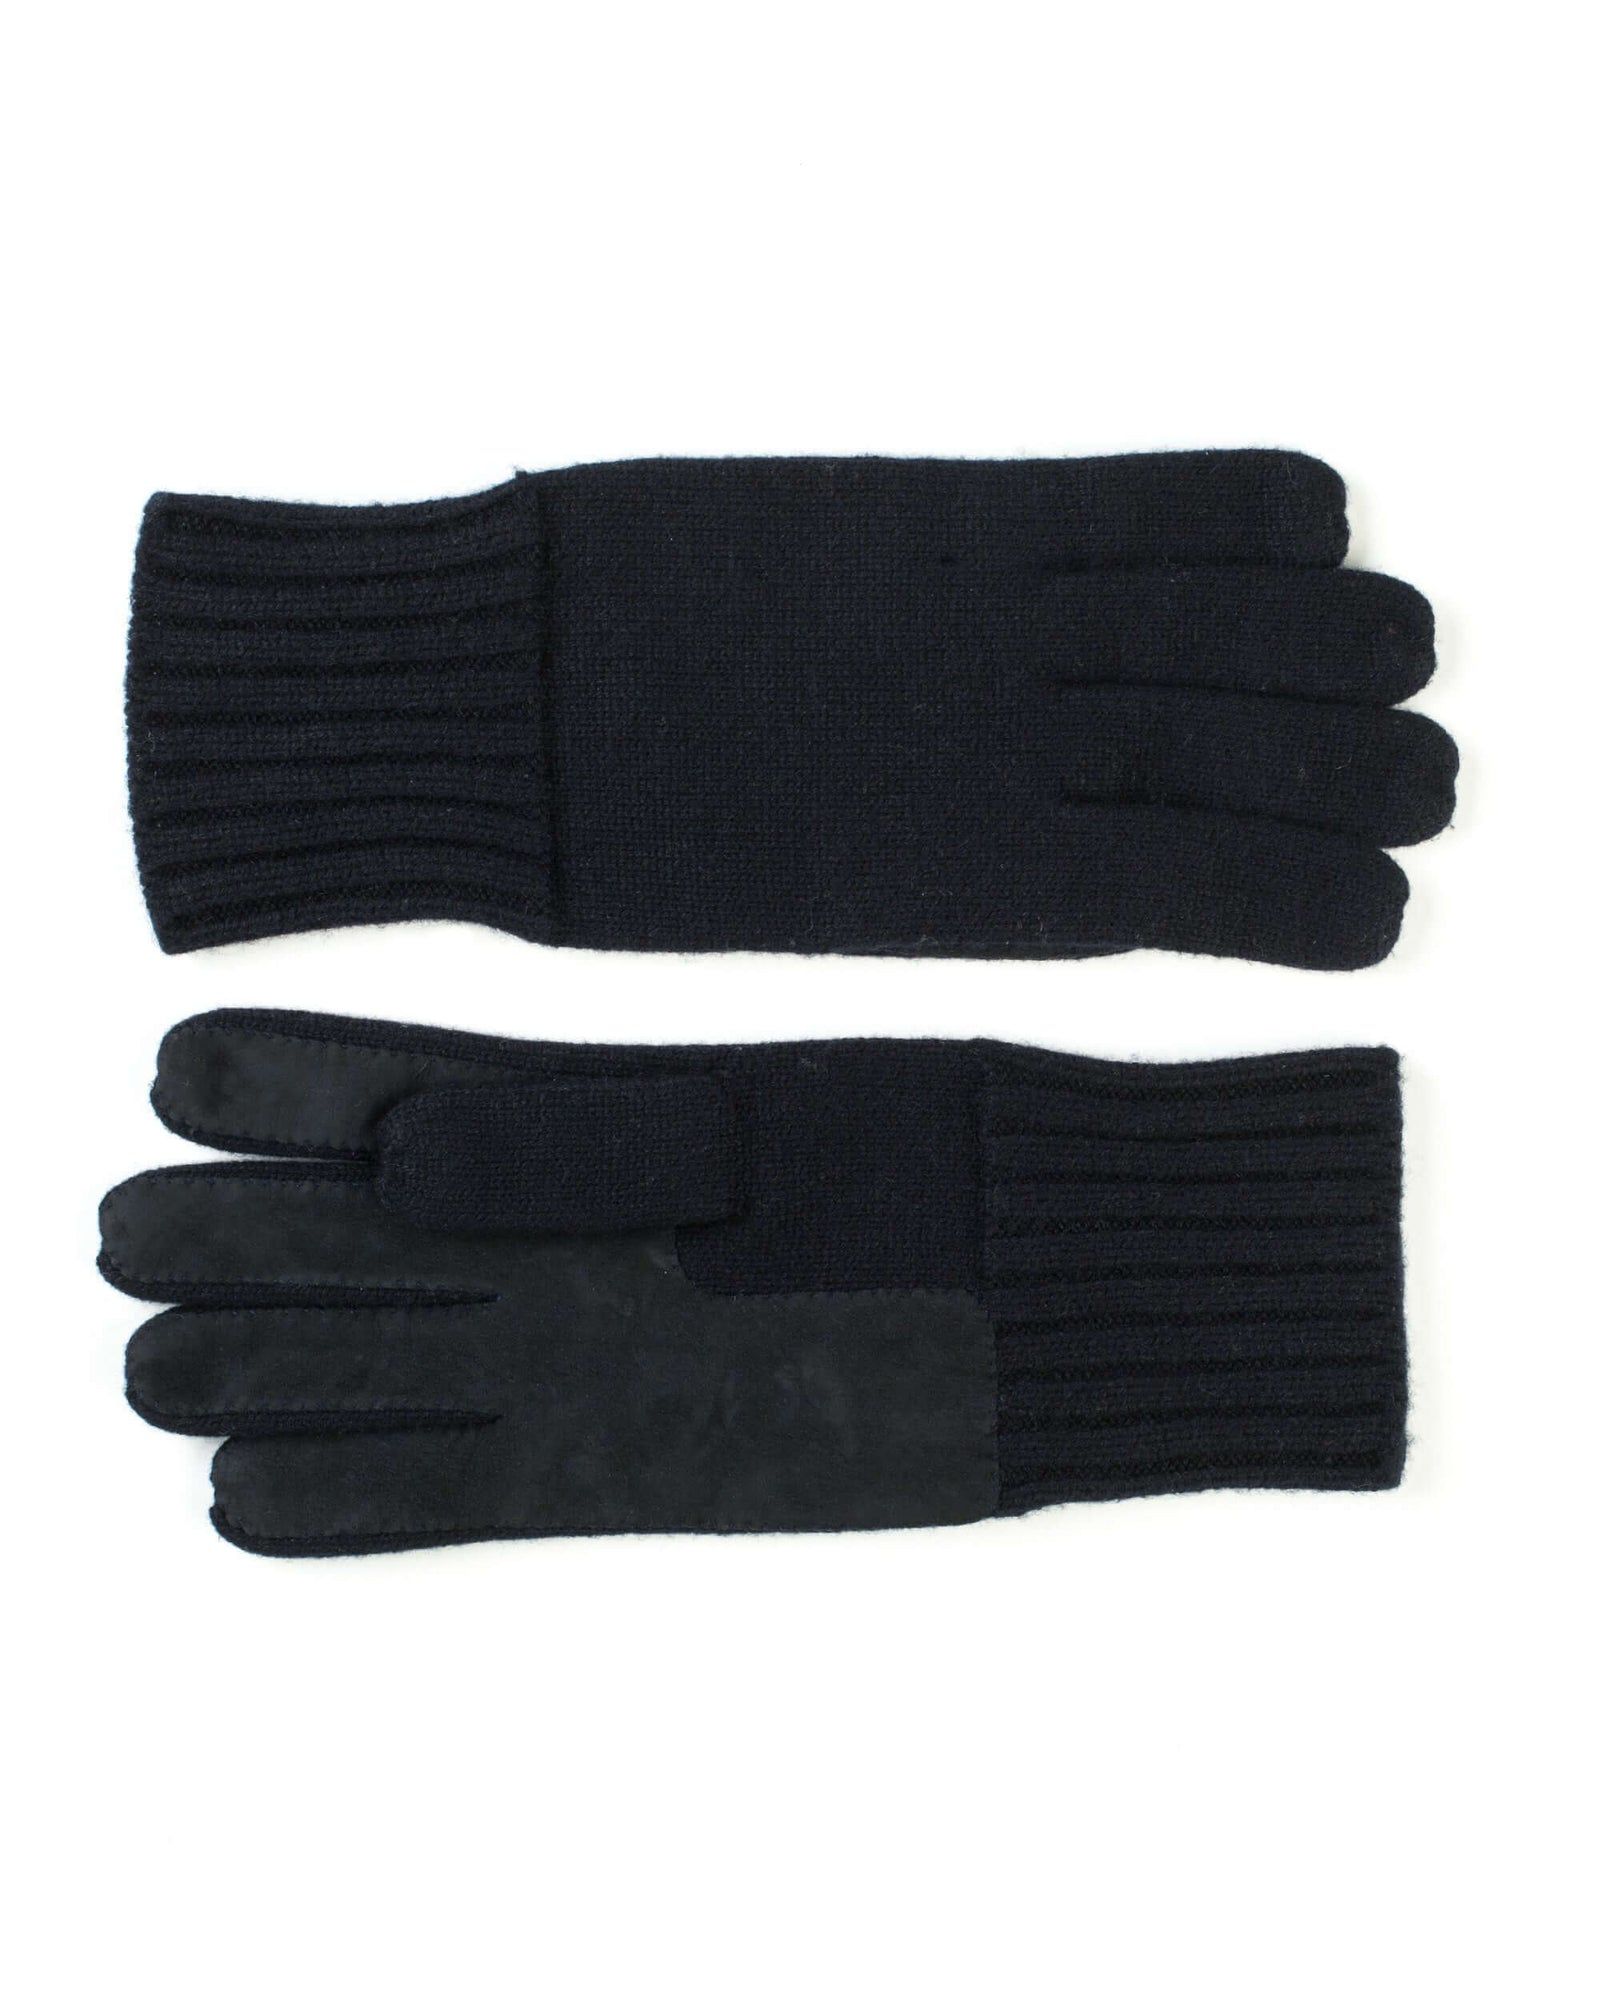 Blue cashmere men's gloves with Suede palm